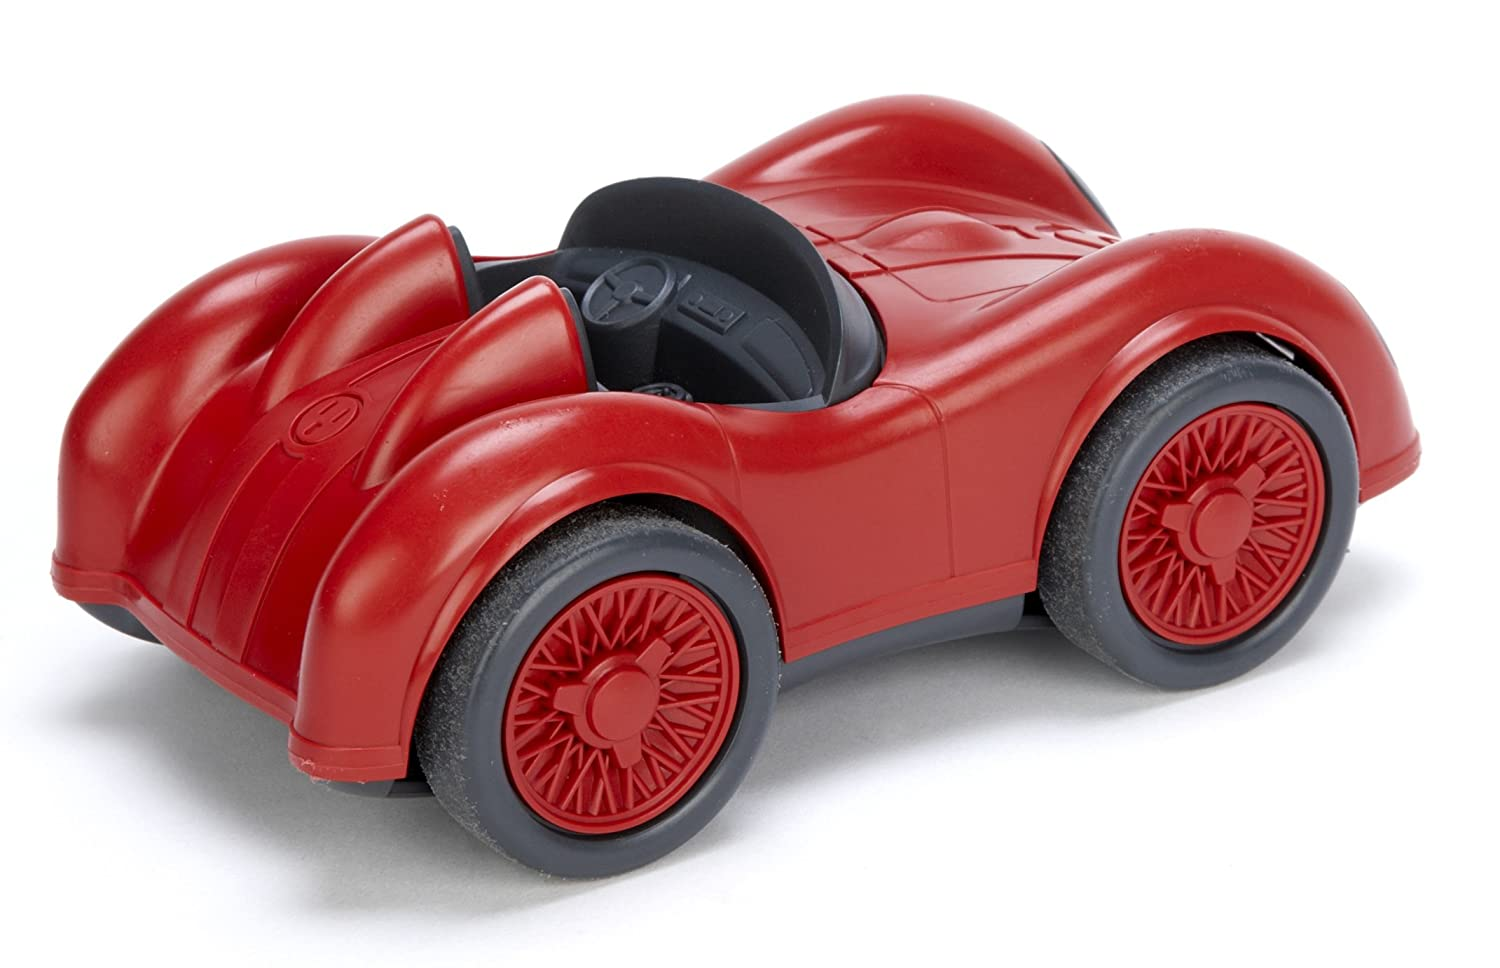 Amazon.com: Green Toys Race Car -Red: Toys & Games